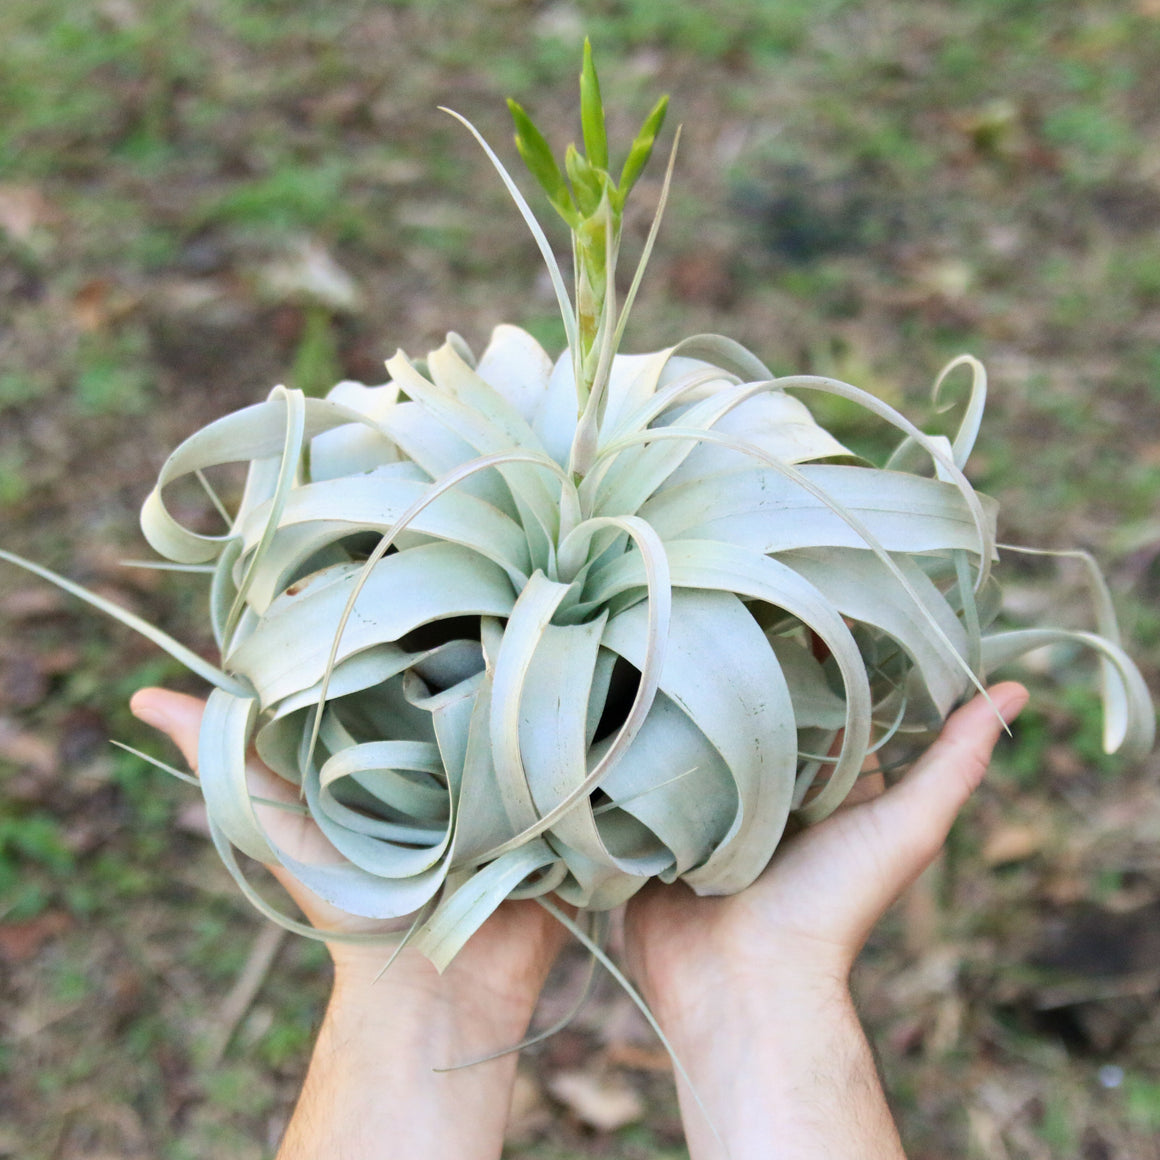 Wholesale - Jumbo Tillandsia Xerographica / 8-10 Inch Plants